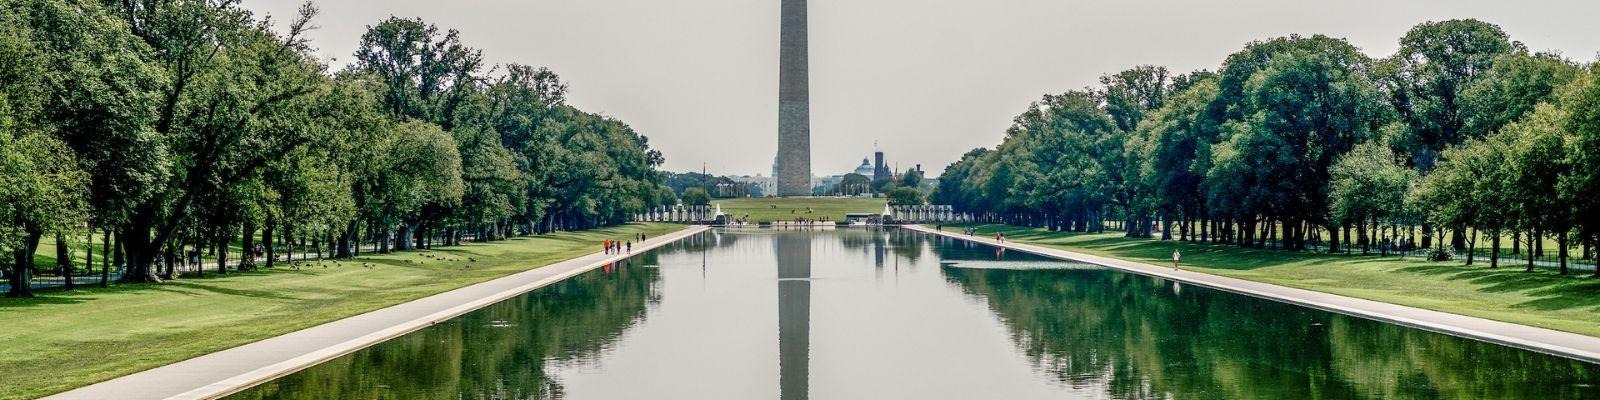 5 Must-See Washington DC Neighborhoods and How to Visit